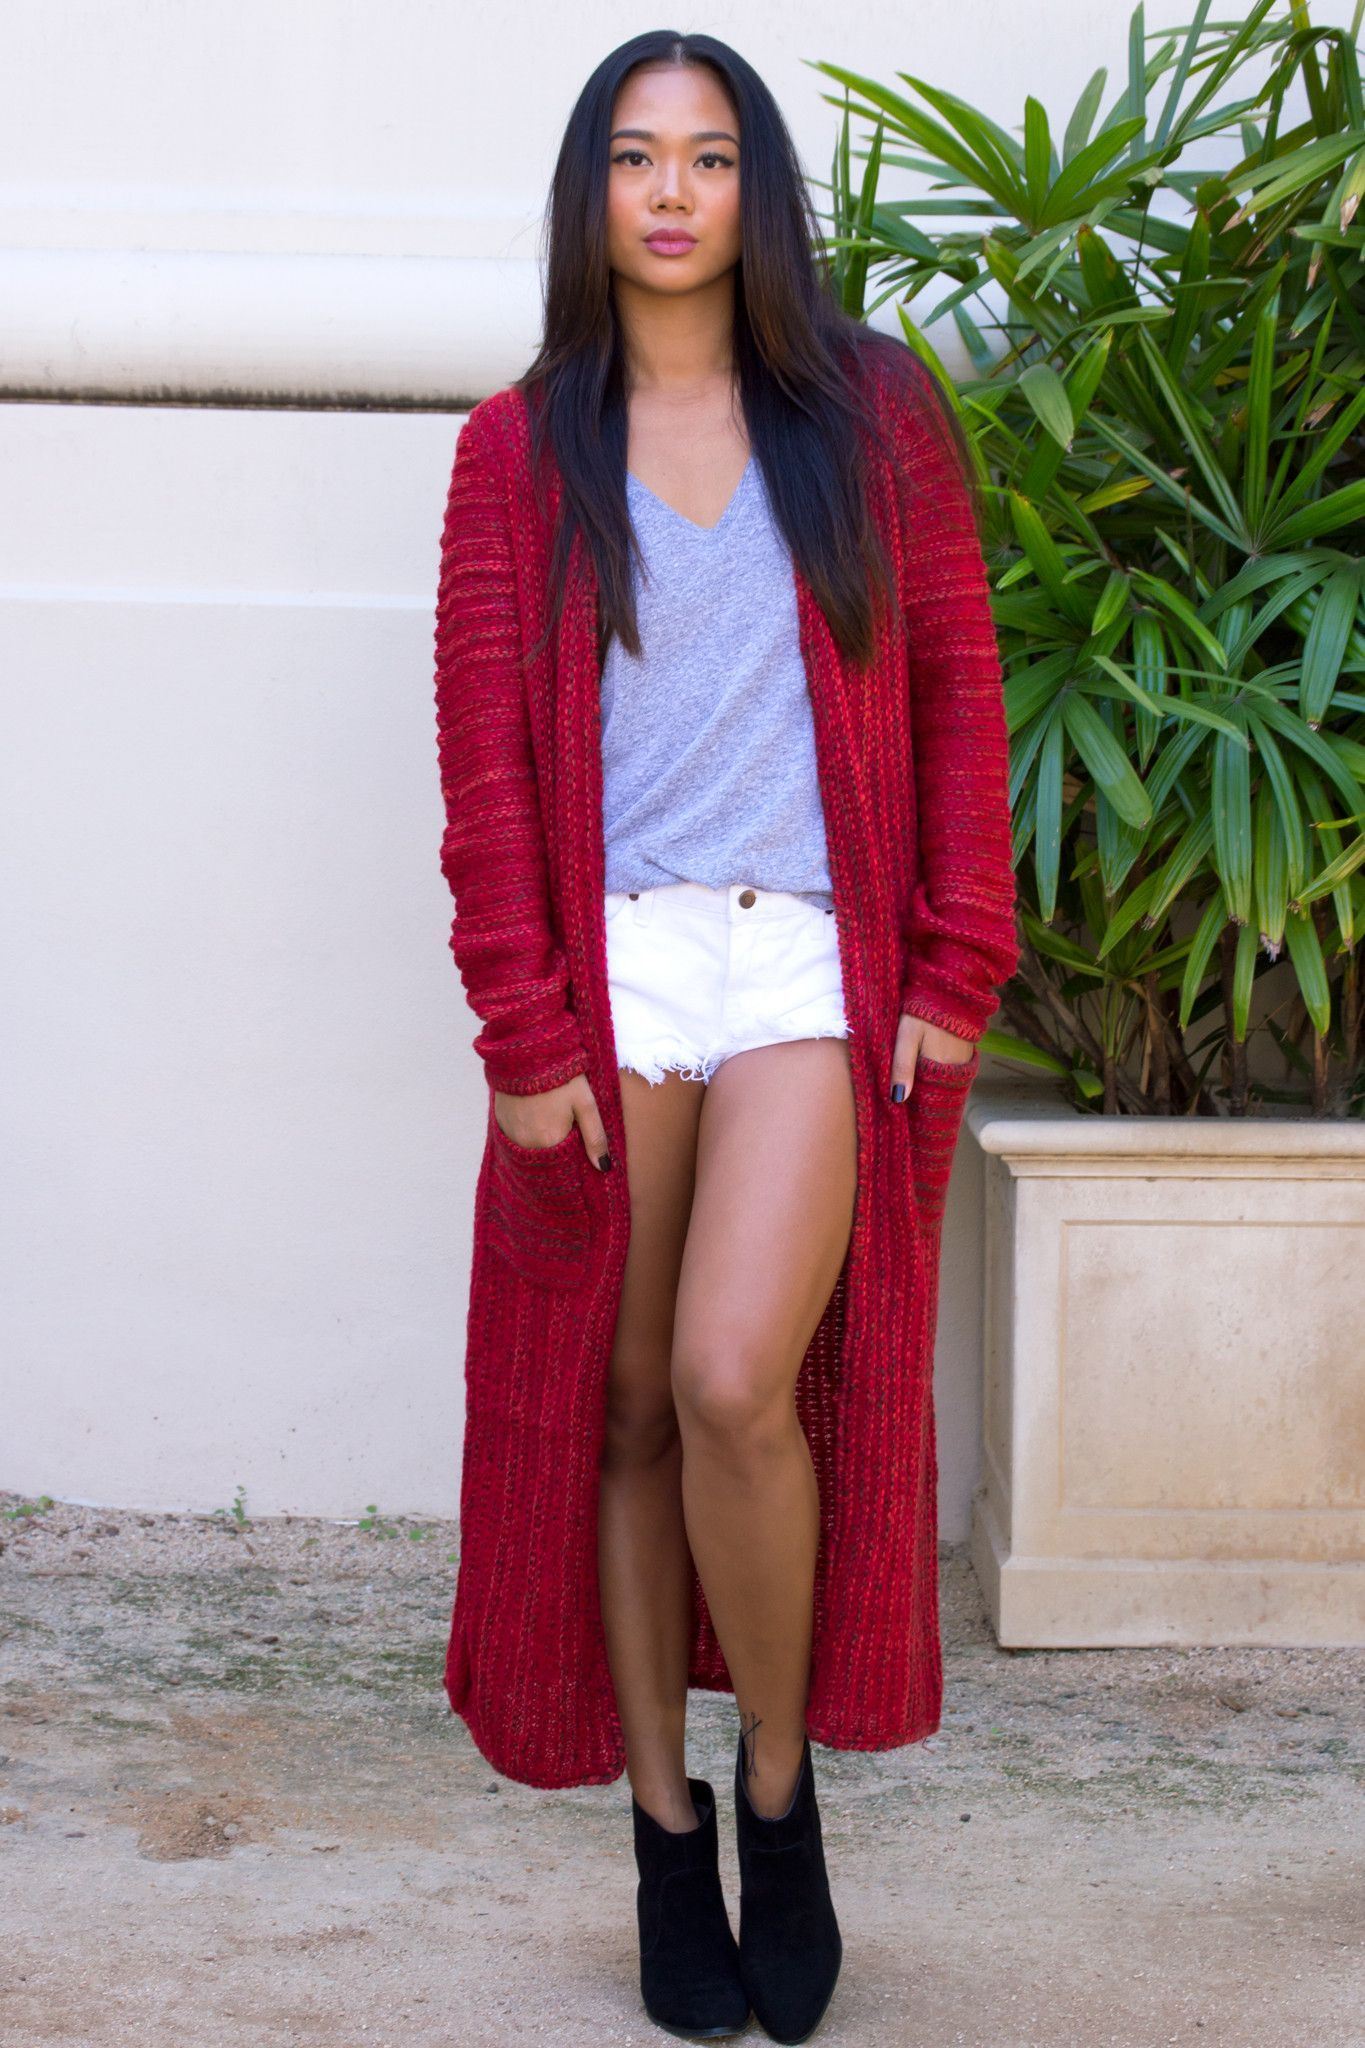 Alexi Red Knit Duster Cardigan | My style | Pinterest | Dusters ...